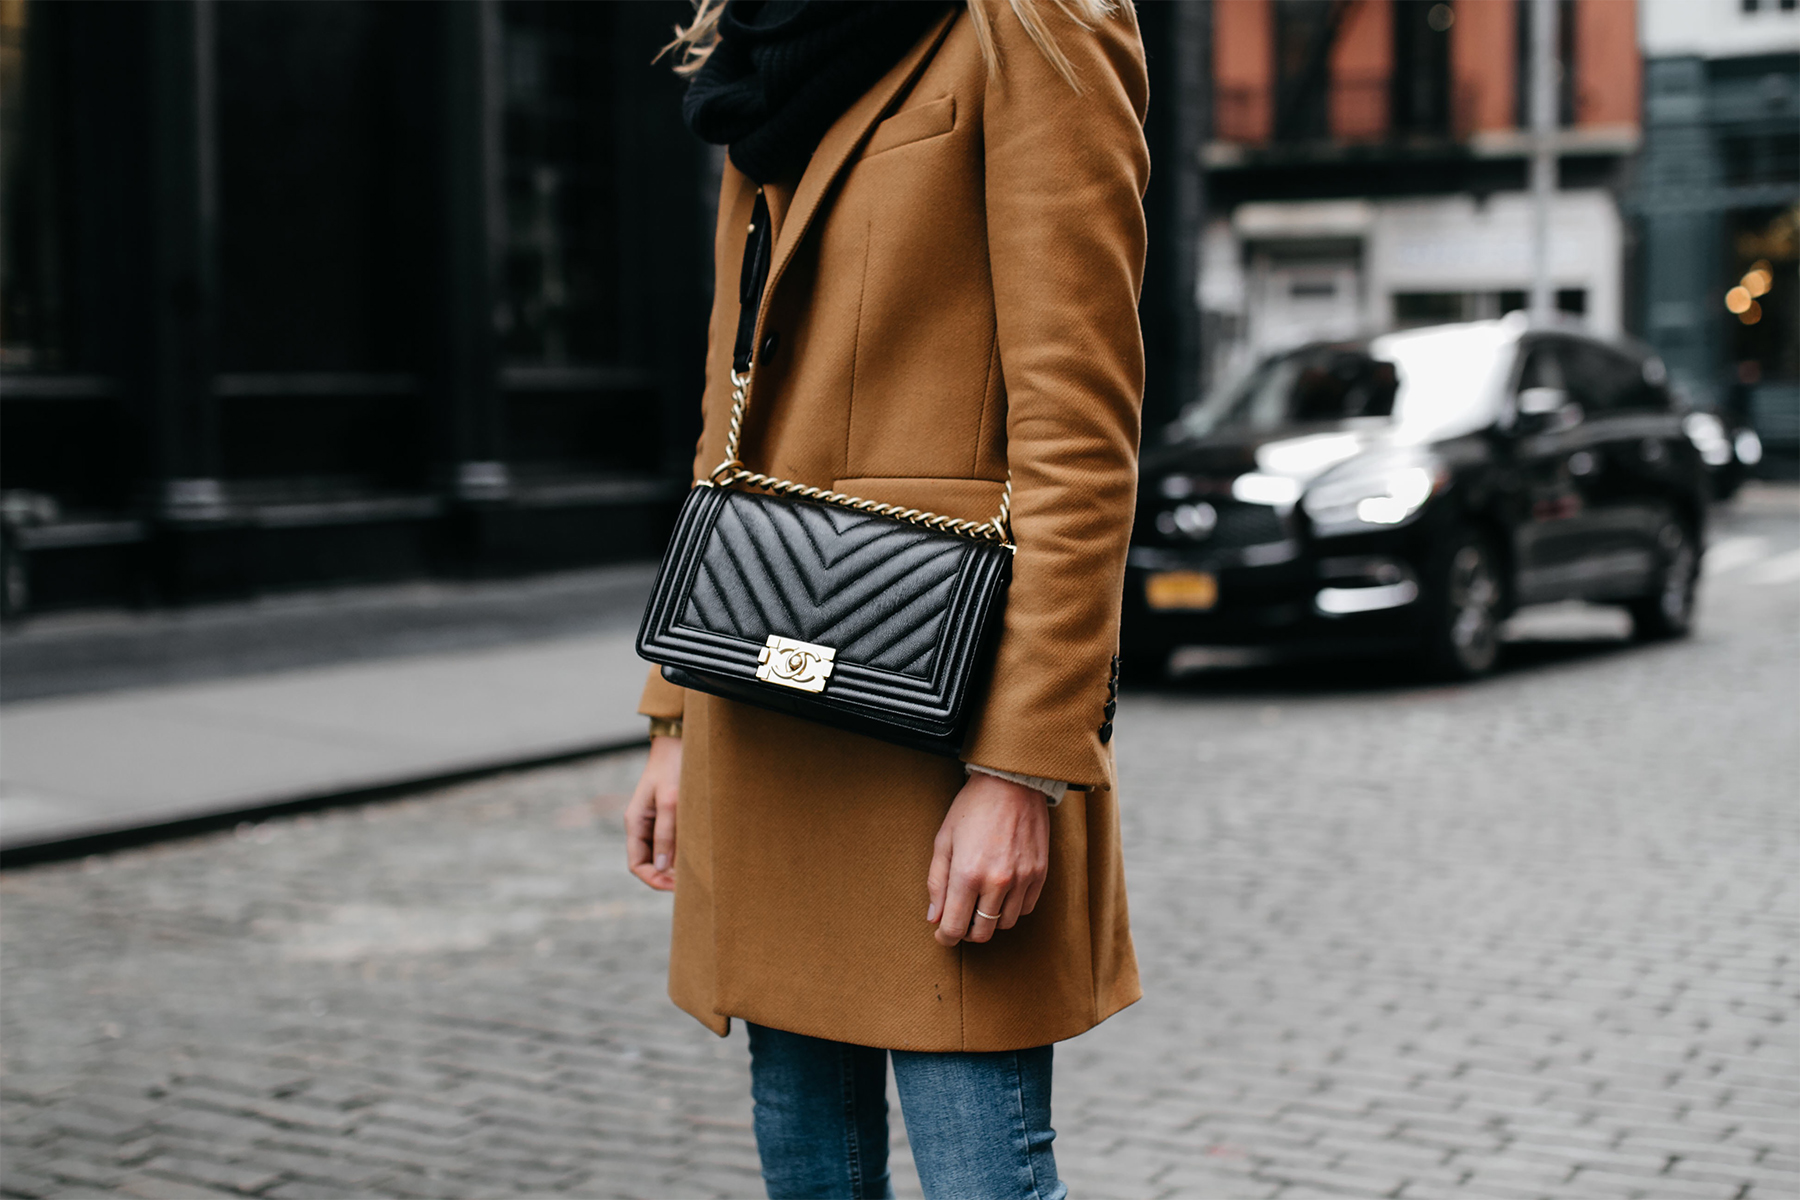 Camel Coat Black Scarf Denim Skinny Jeans Chanel Black Boy Bag Fashion Jackson Dallas Blogger Fashion Blogger NYC Street Style